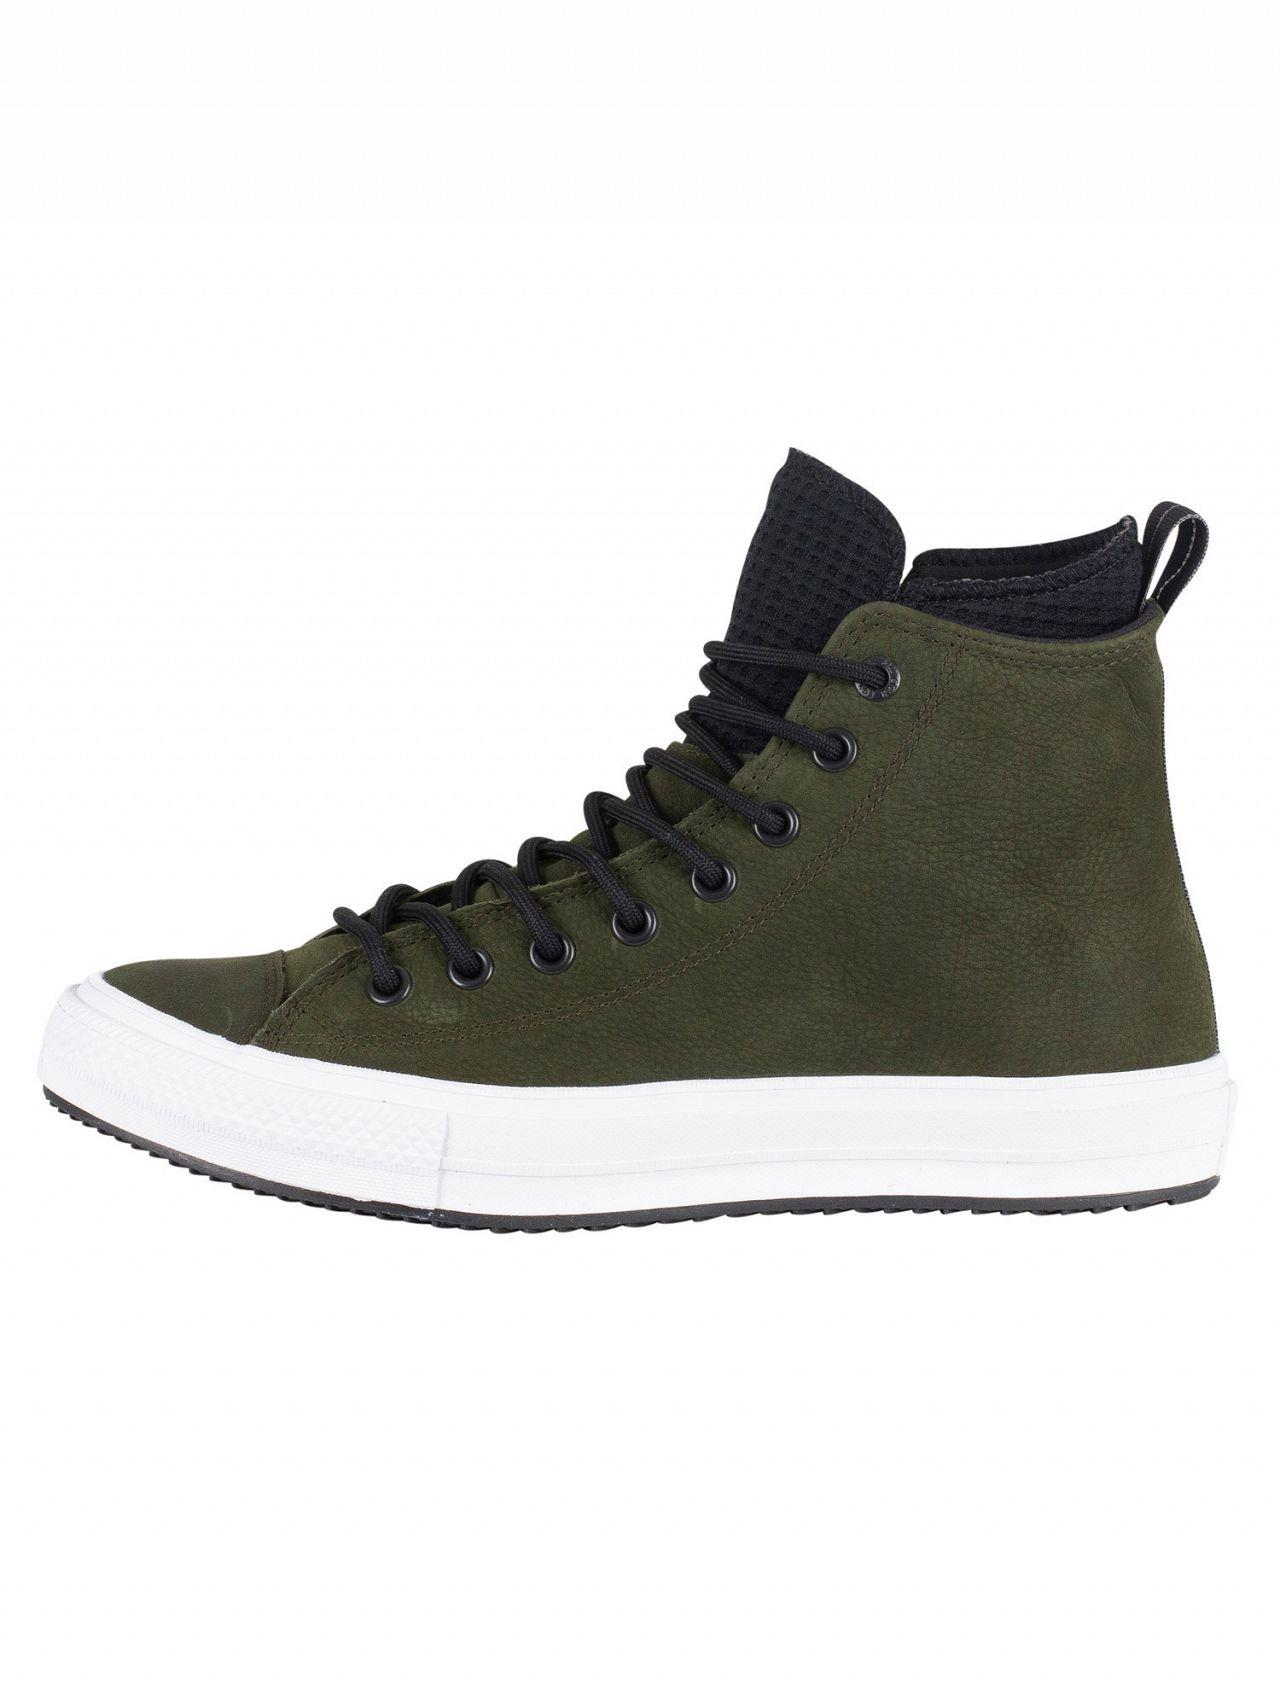 c6f7dc9dd856 Lyst - Converse Utility Green black white Ct All Star Hi Wp Leather ...